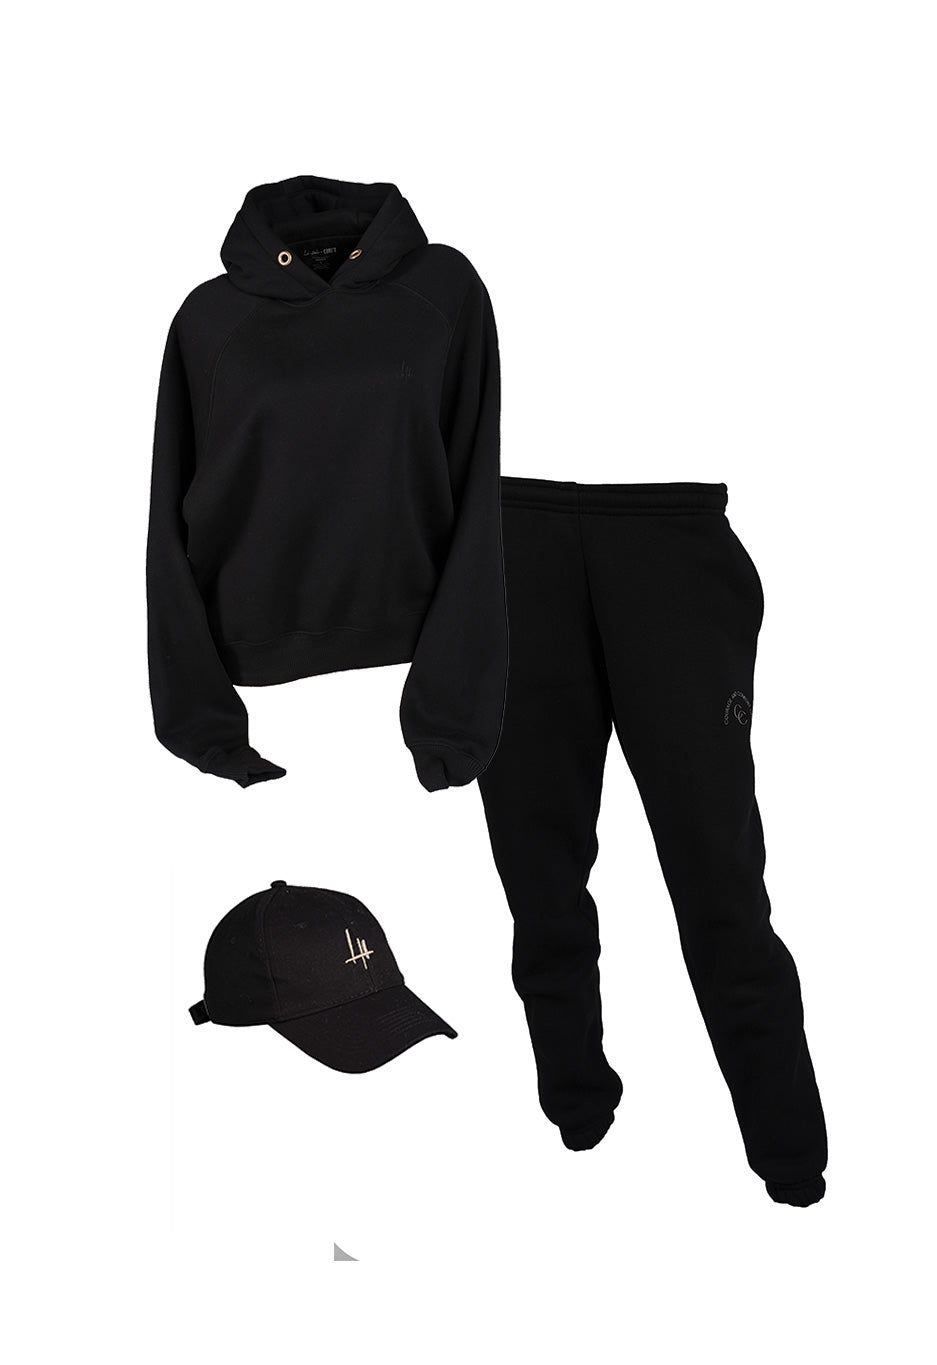 More Toxic Tracksuit + Cap - Bundle